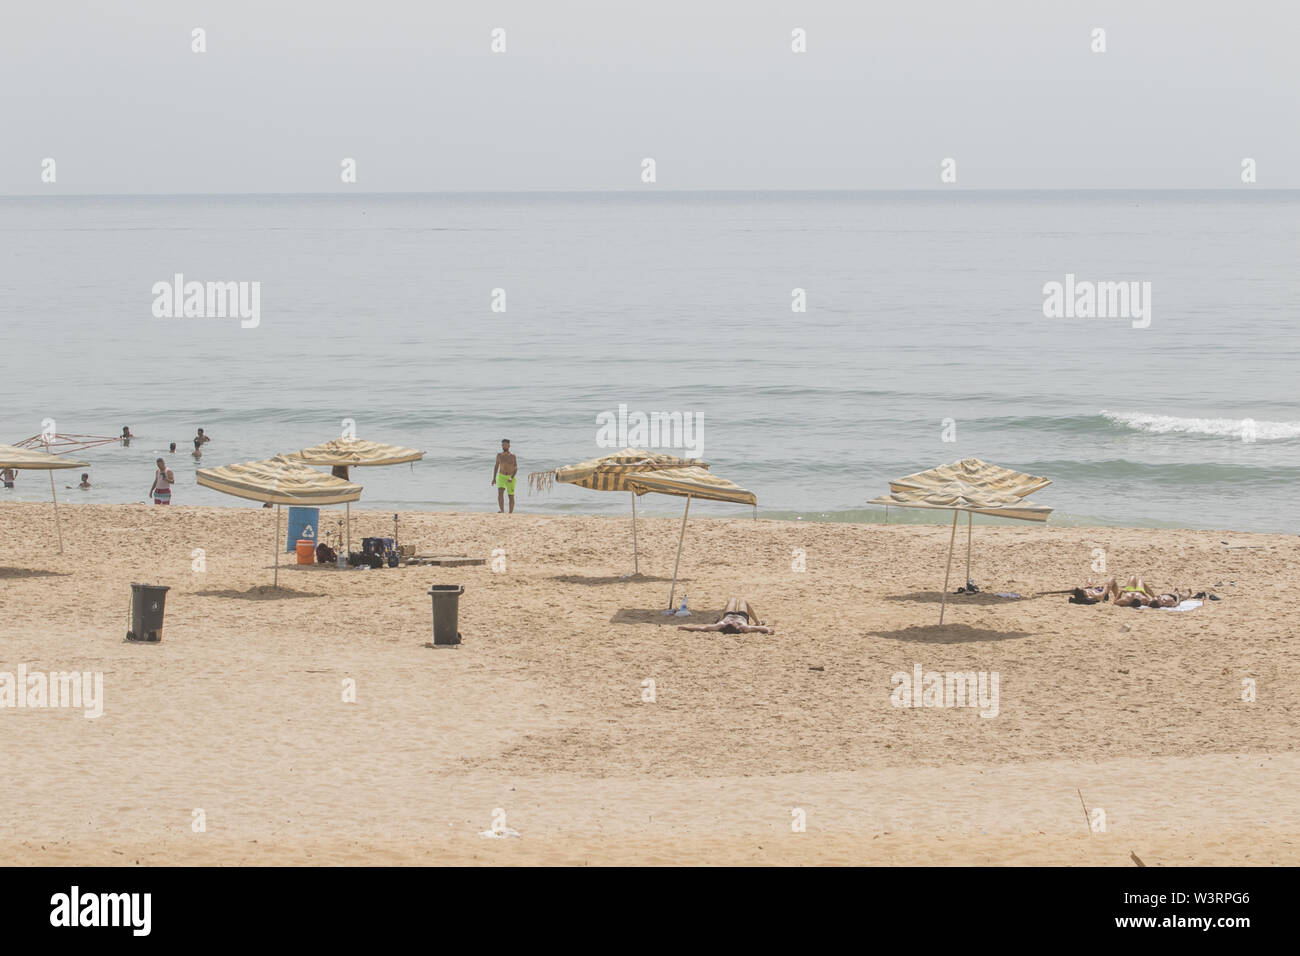 Beirut, Lebanon. 17th July, 2019. Parasols used at the beach during a sweltering day as temperatures exceed 40 degrees Celsius. Credit: Amer Ghazzal/SOPA Images/ZUMA Wire/Alamy Live News - Stock Image